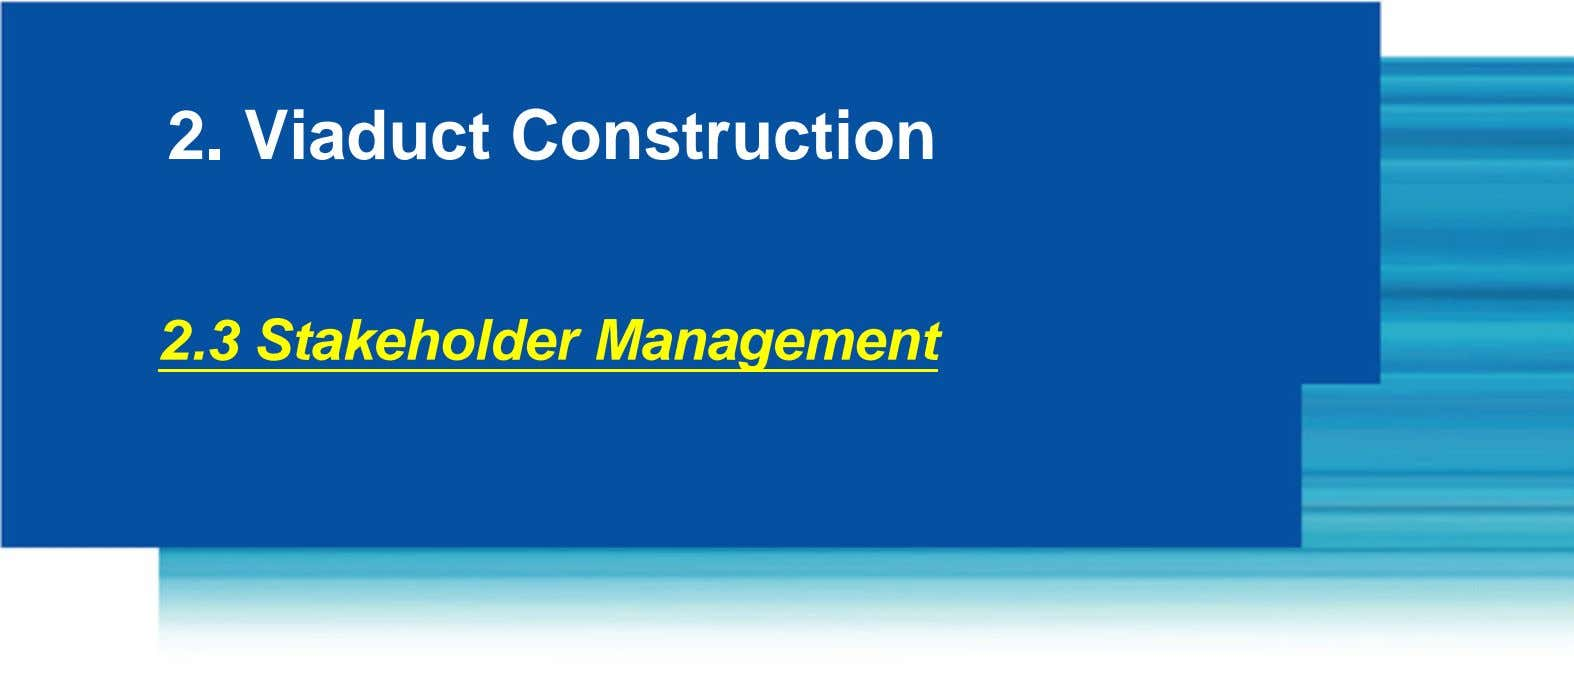 2. Viaduct Construction 2.3 Stakeholder Management